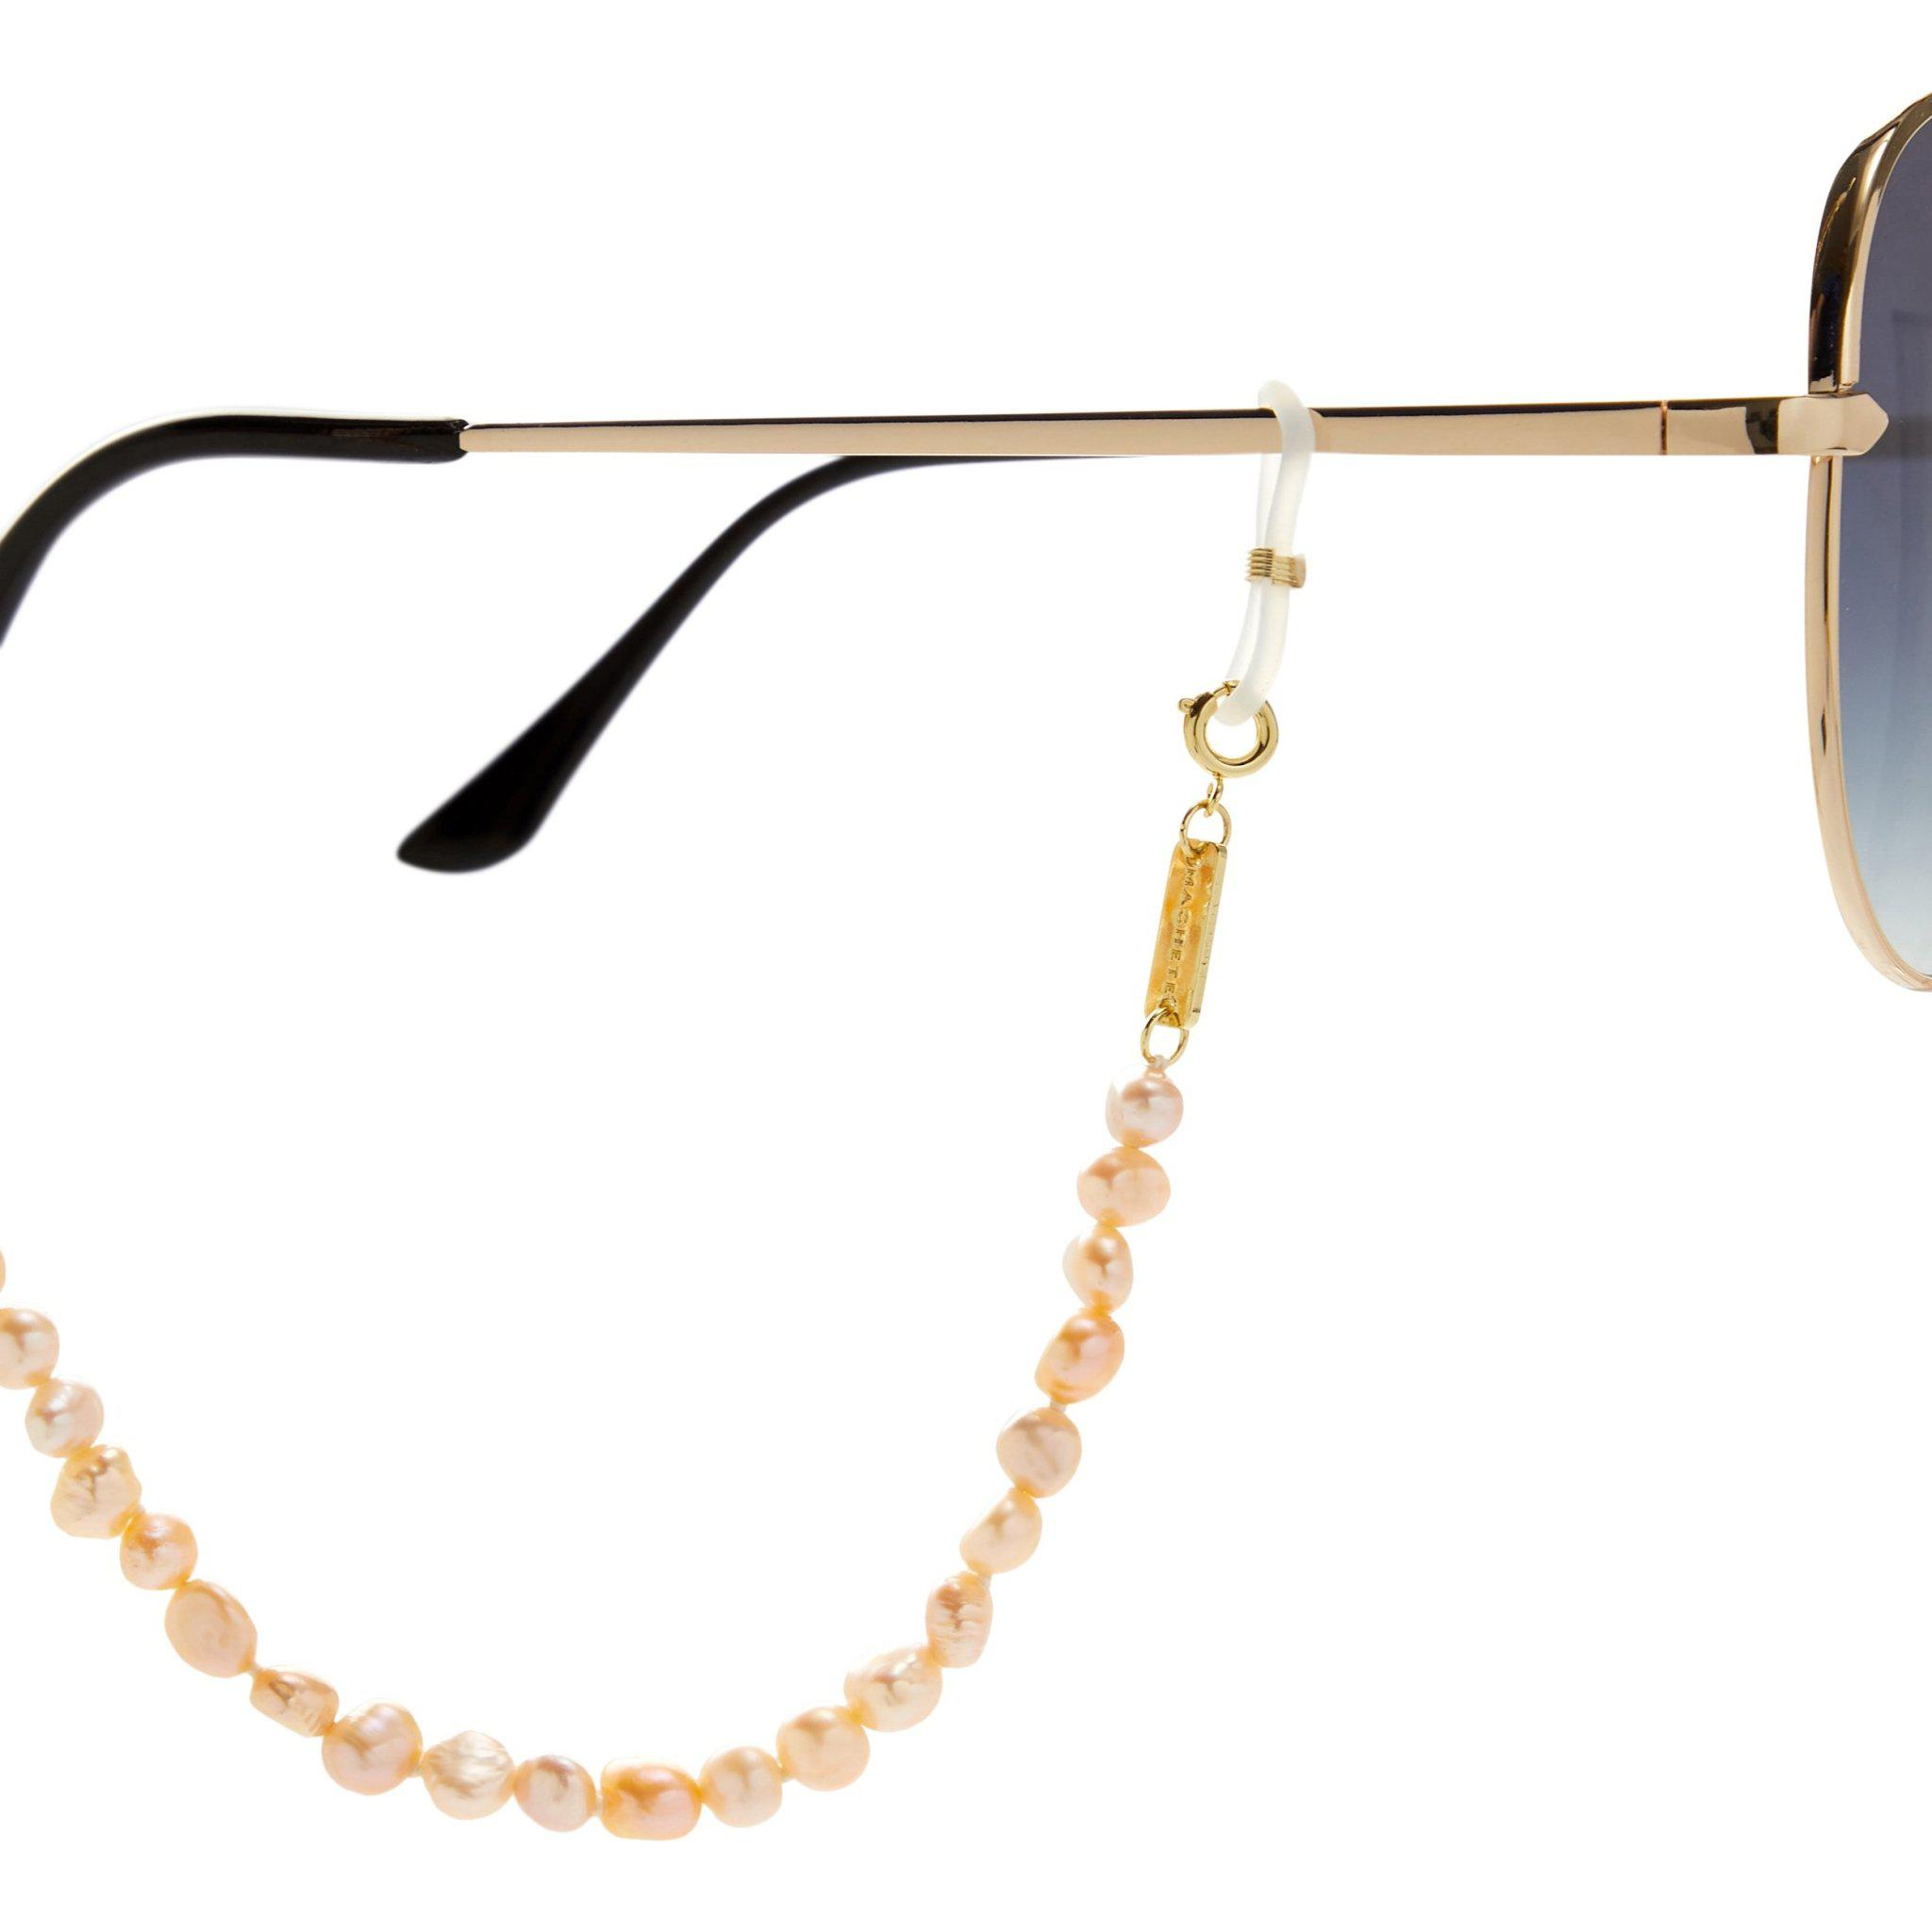 Mixed Freshwater Pearl Sunglas/Mask Chain in Yellow + Pink 1